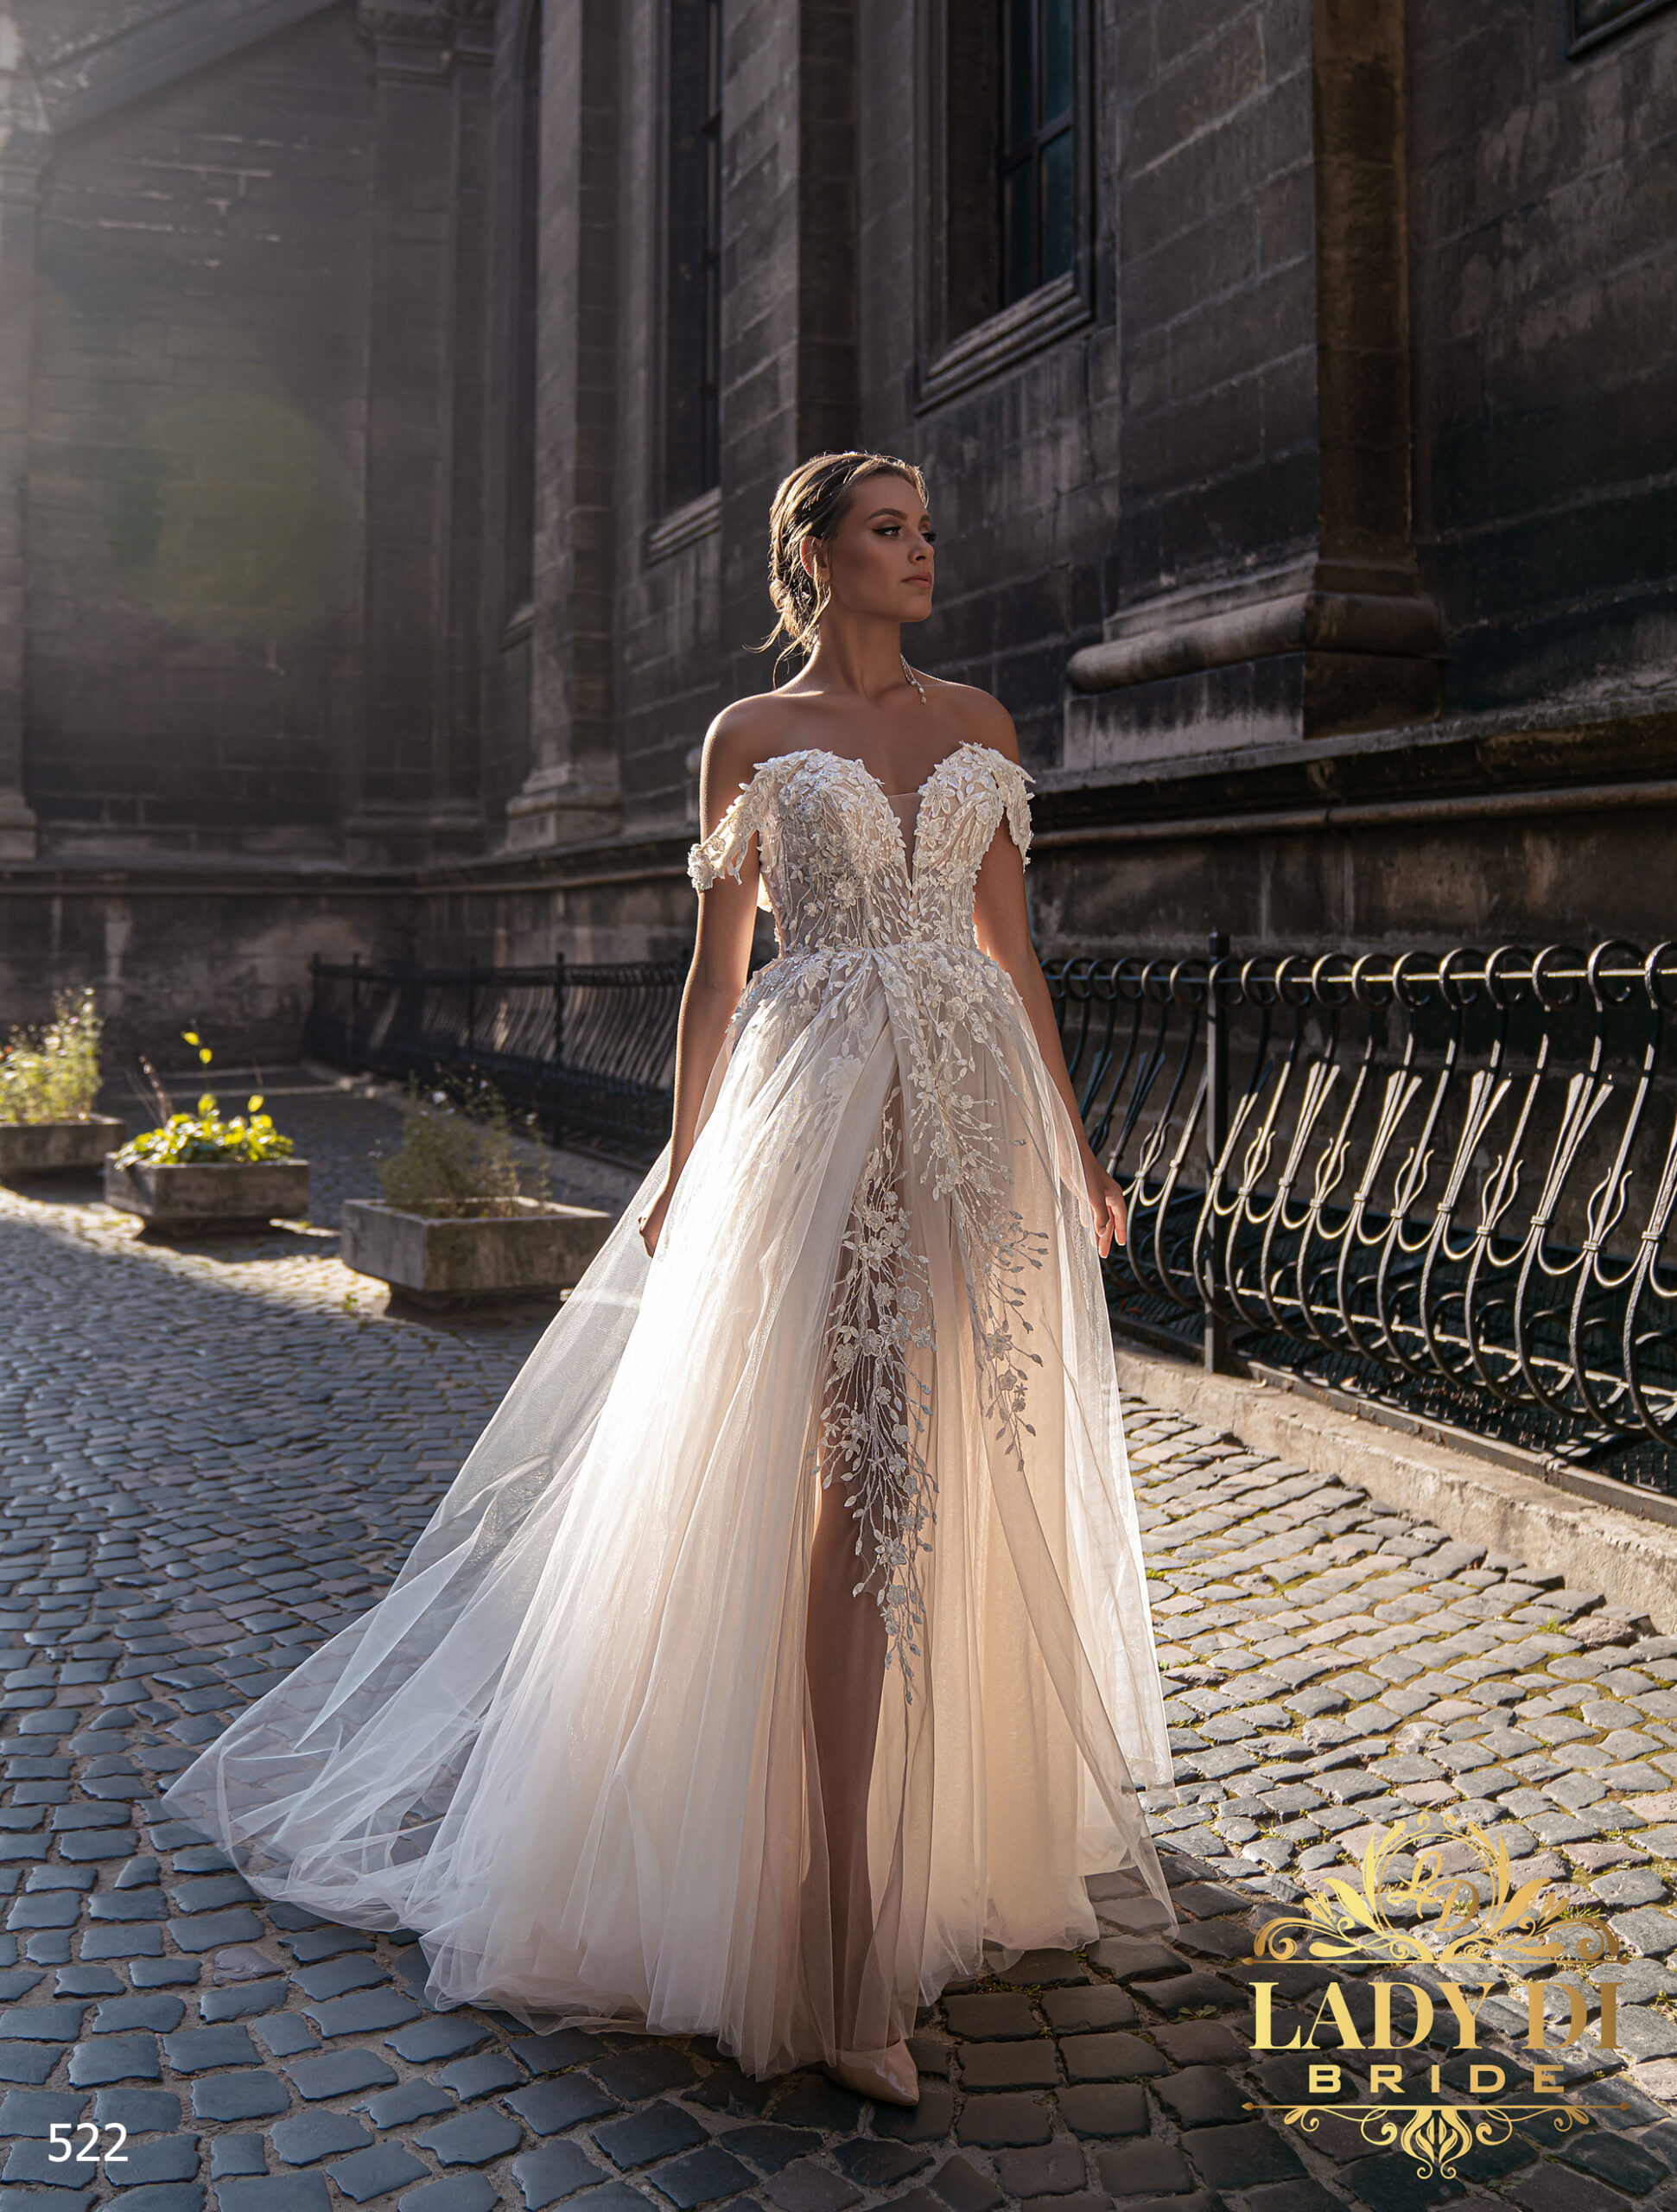 Wedding-dress-522-1